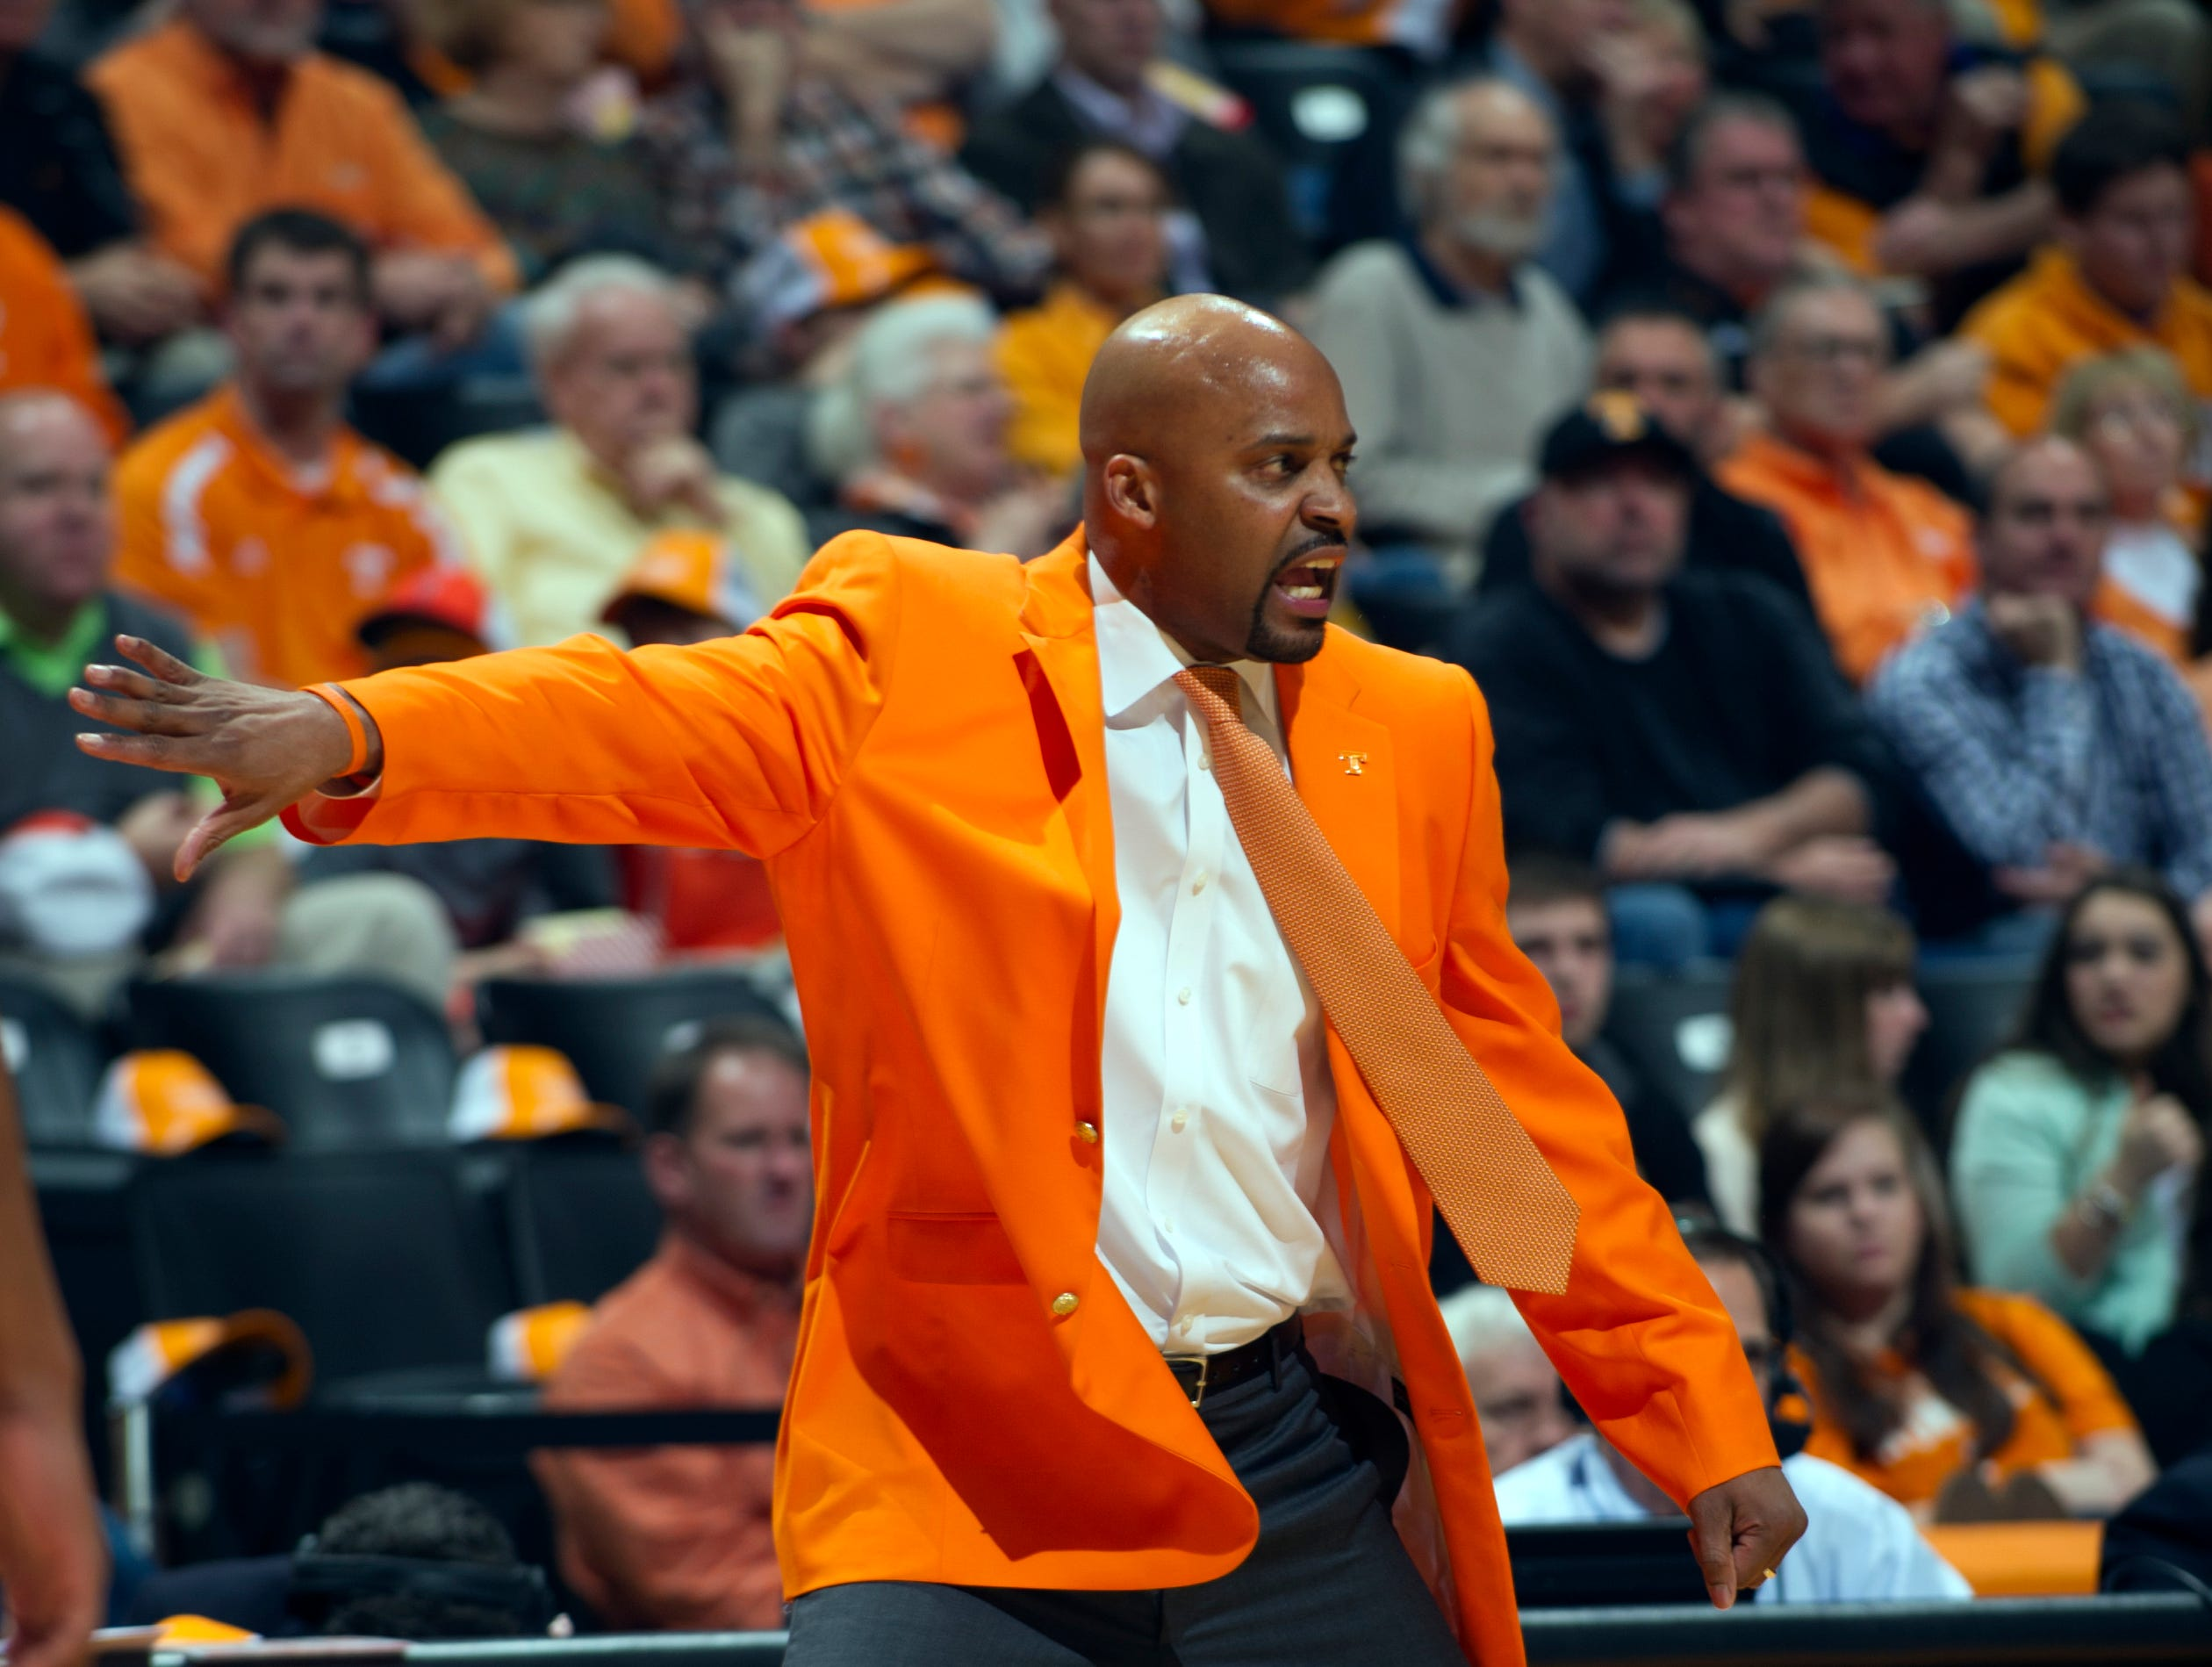 Tennessee head coach Cuonzo Martin calls to his players in the first half against Vanderbilt at Thompson-Boling Arena Tuesday, Jan. 29, 2013.